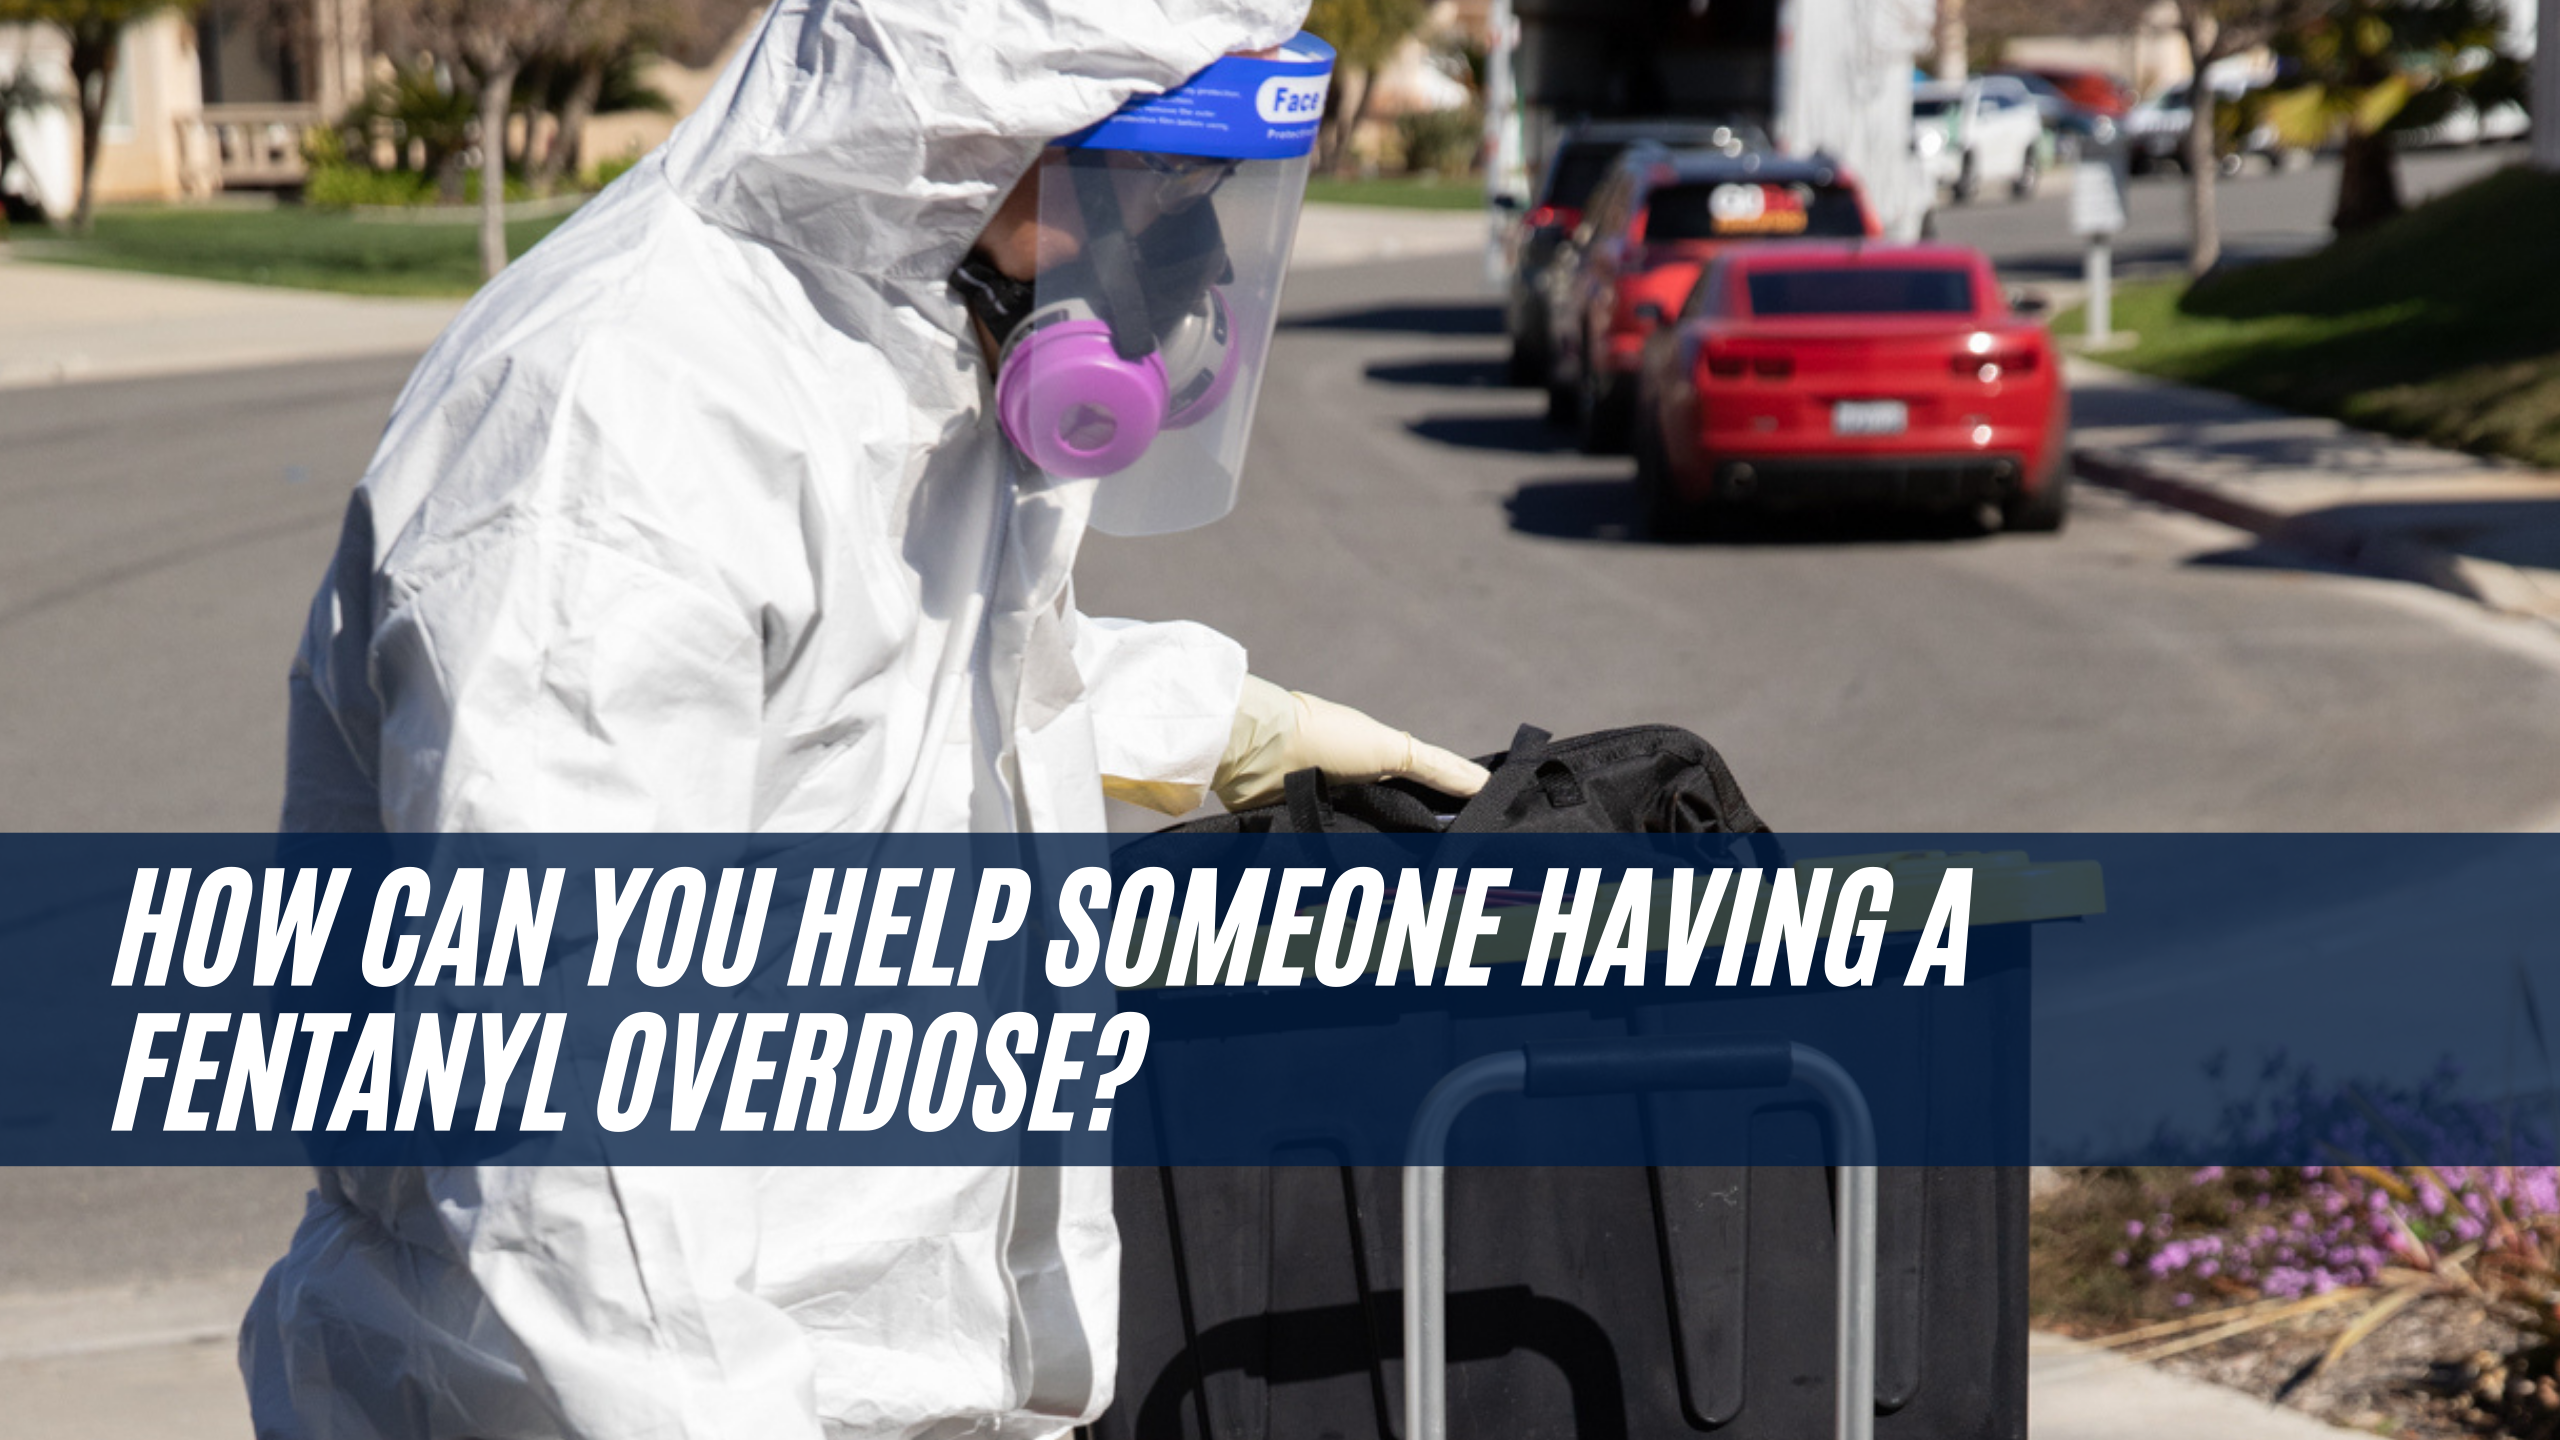 How can you help someone having a Fentanyl overdose?